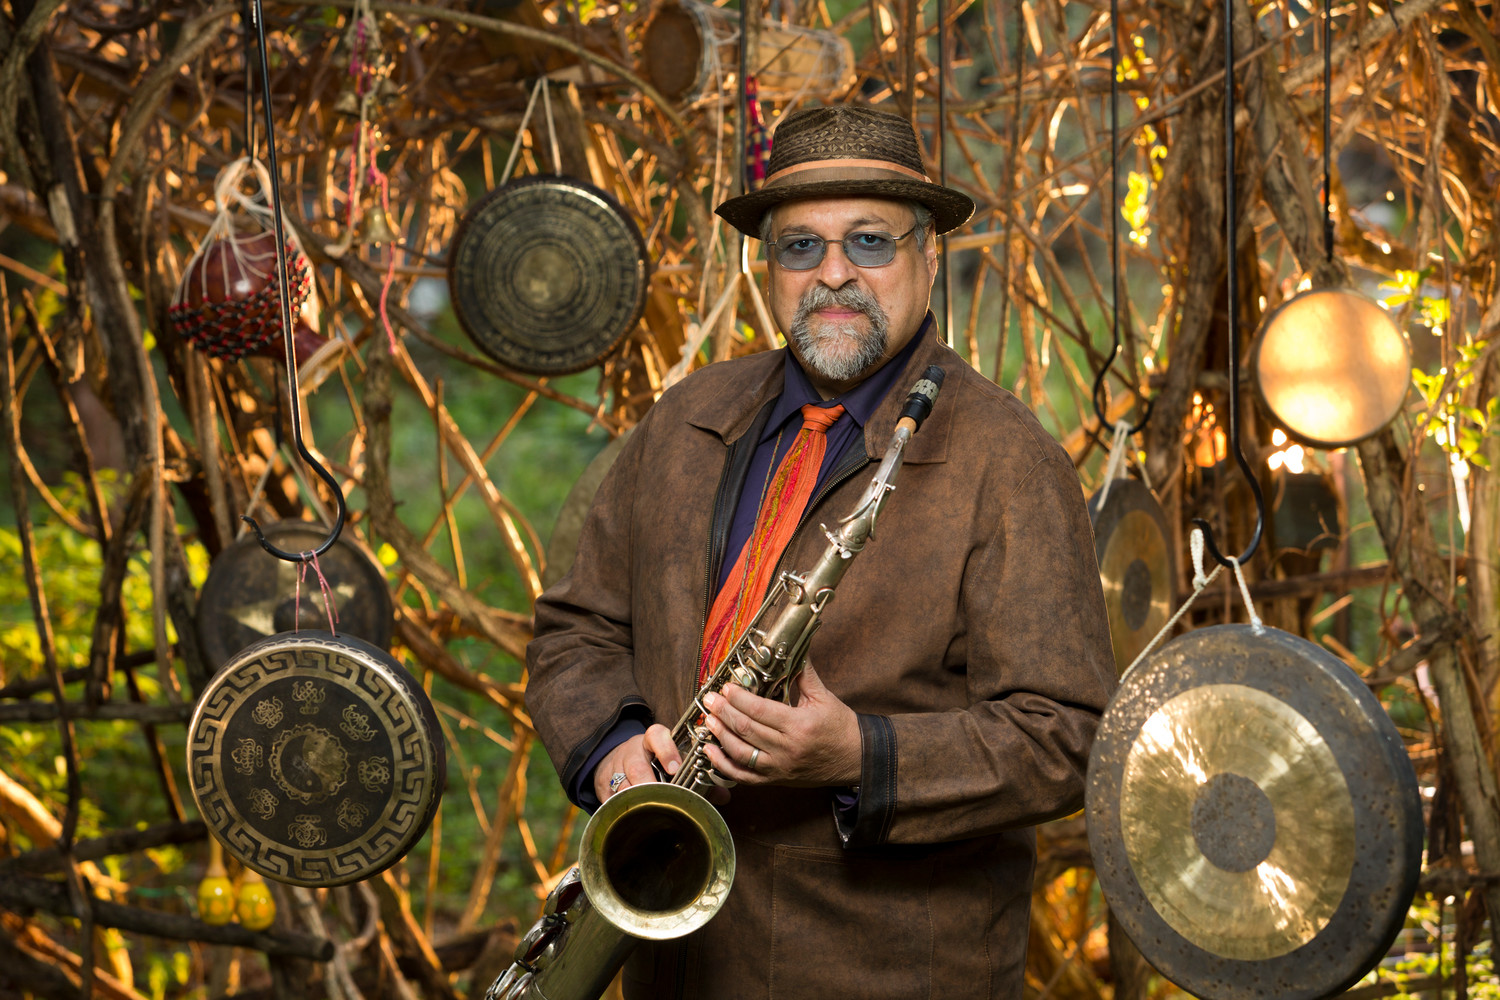 Sax legend Joe Lovano headlines the Coltrane Day lineup.